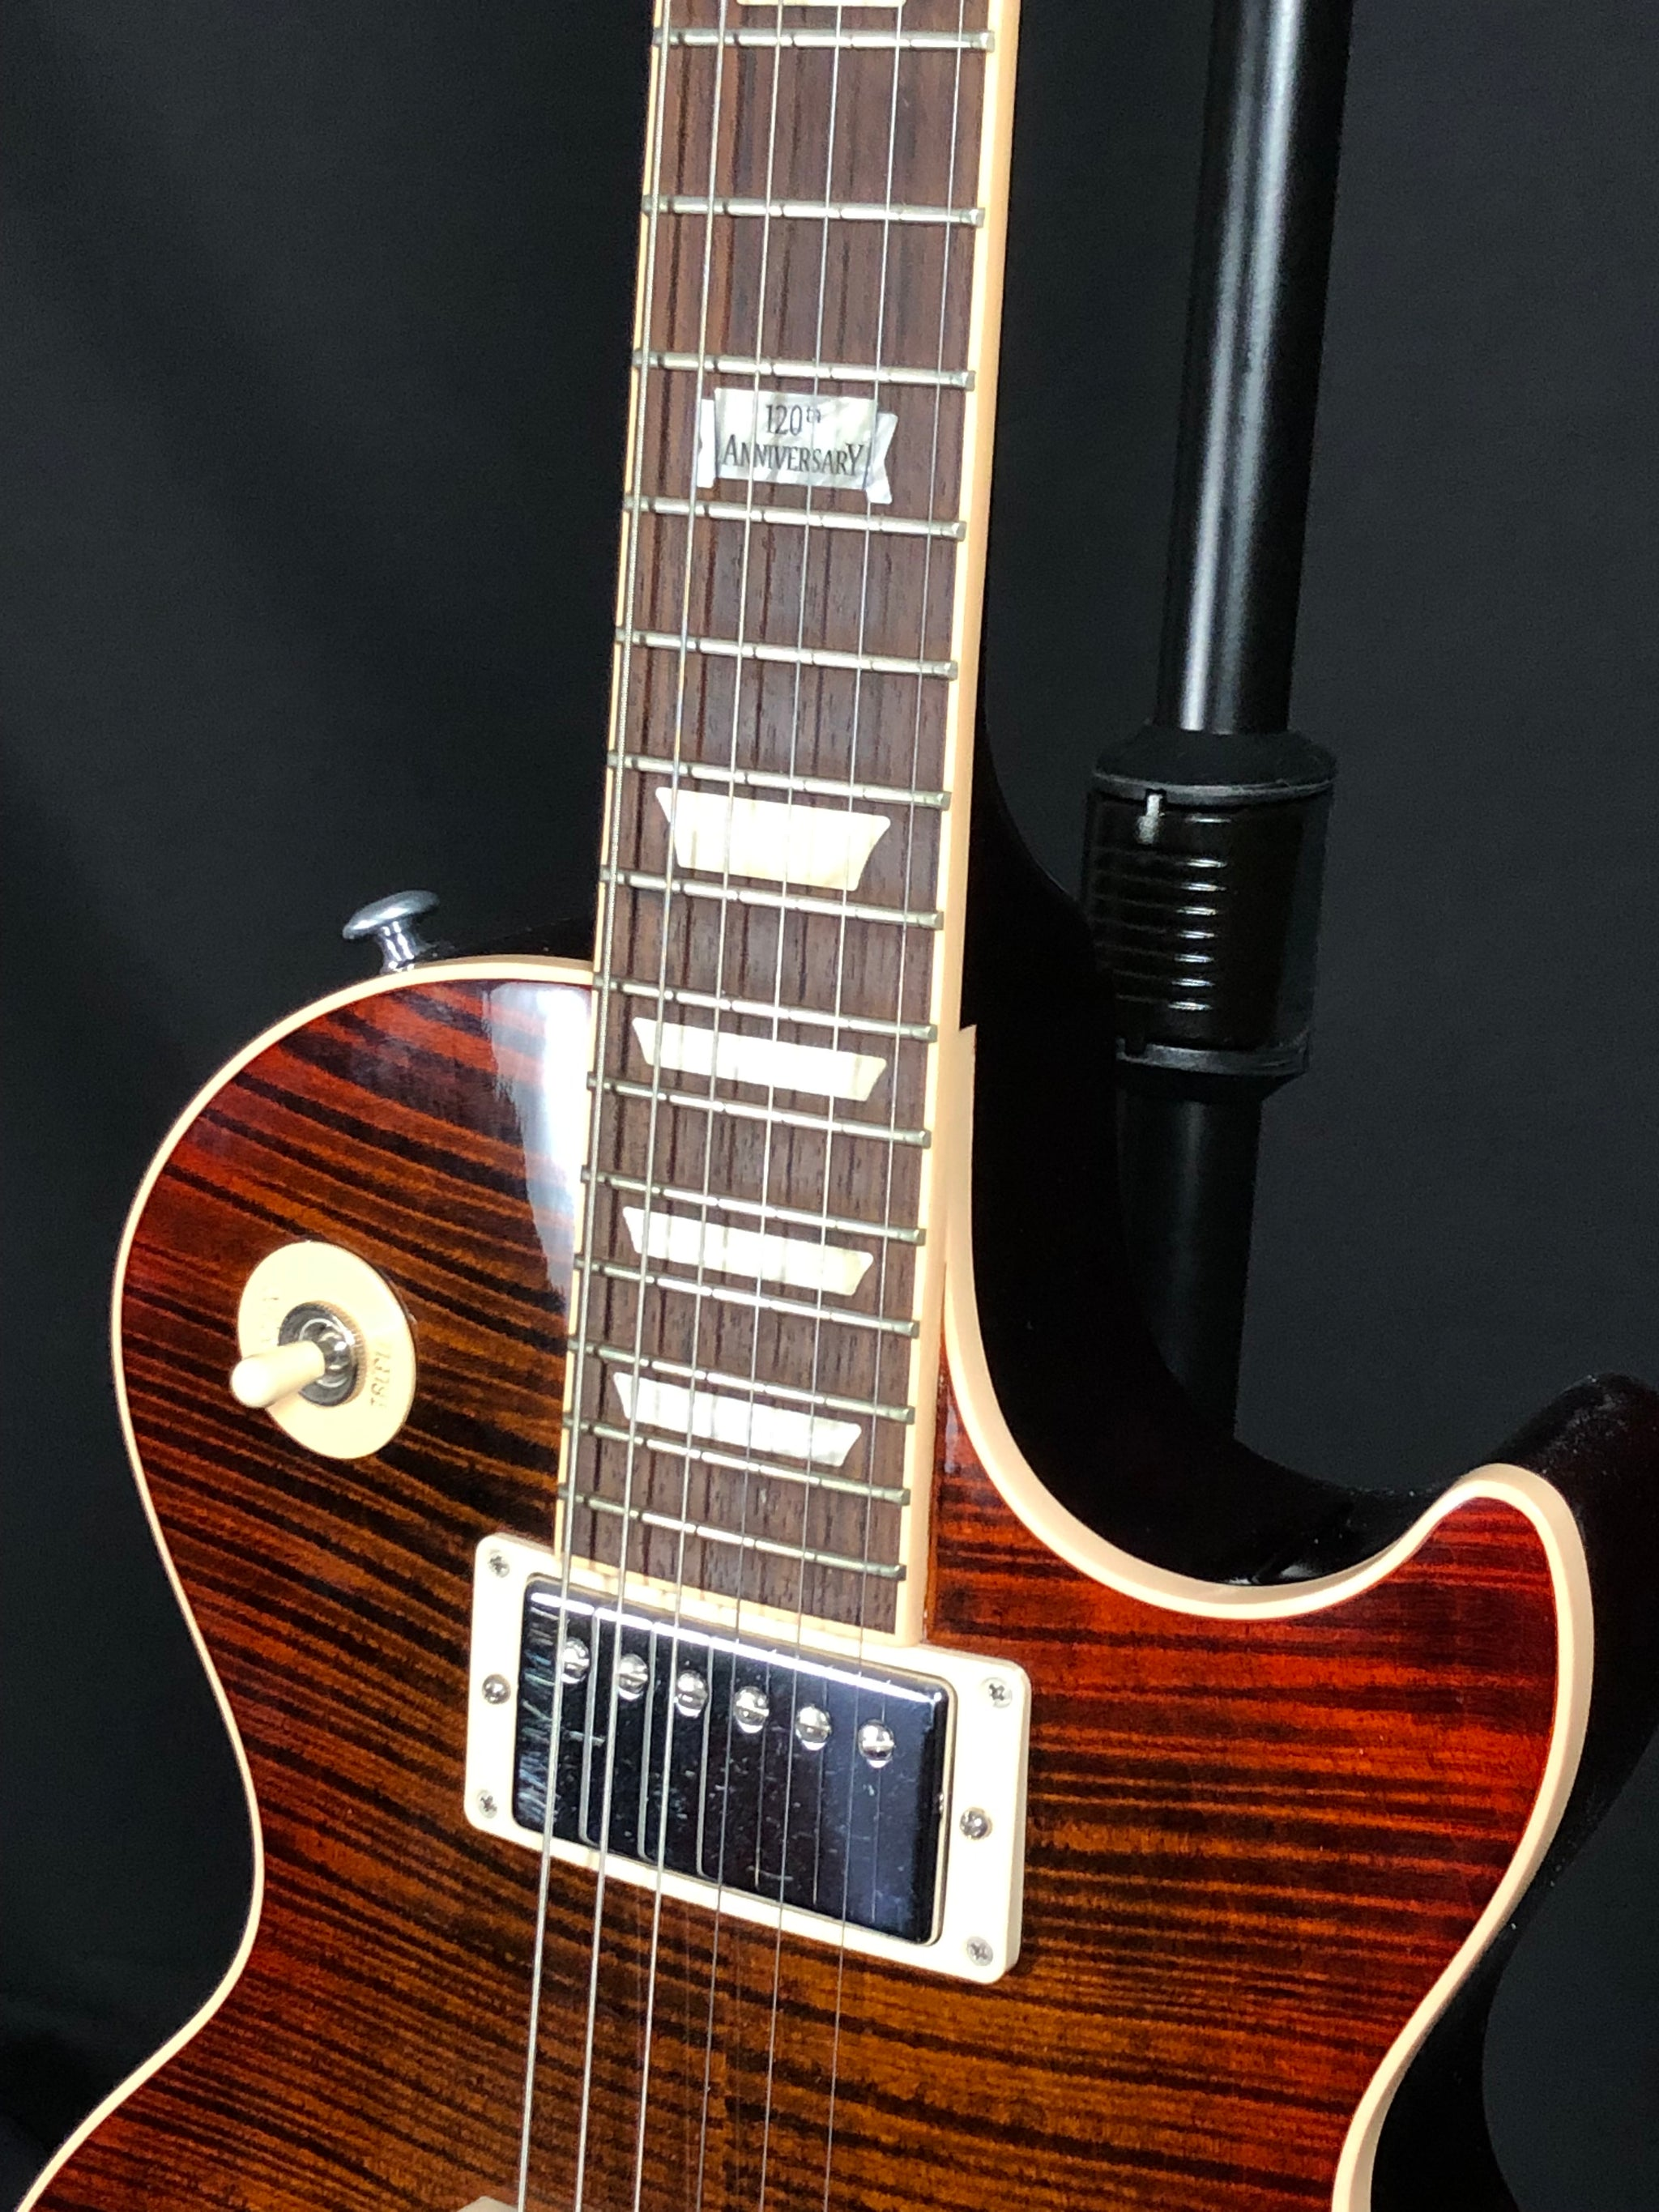 **** SOLD **** 2014 Gibson Les Paul Book-Matched Flame Top!